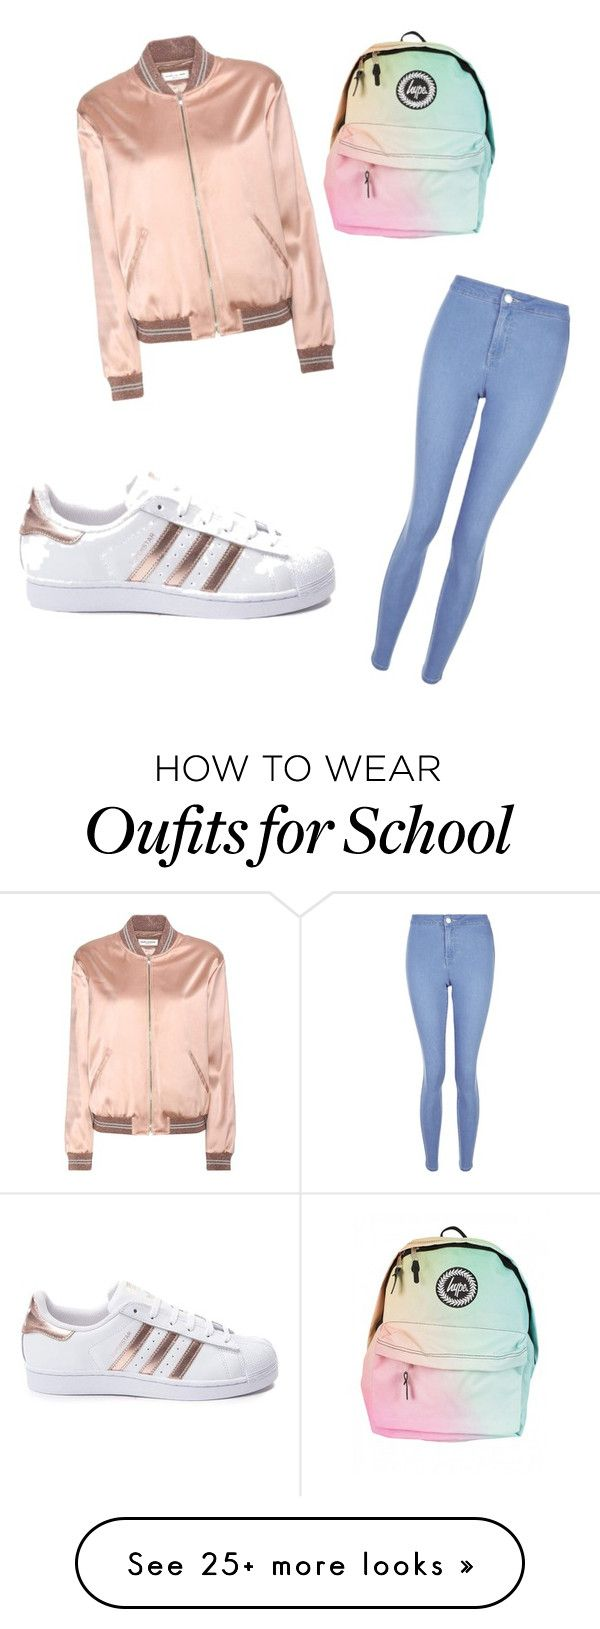 """School"" by matre on Polyvore featuring New Look, Yves Saint Laurent and adidas"